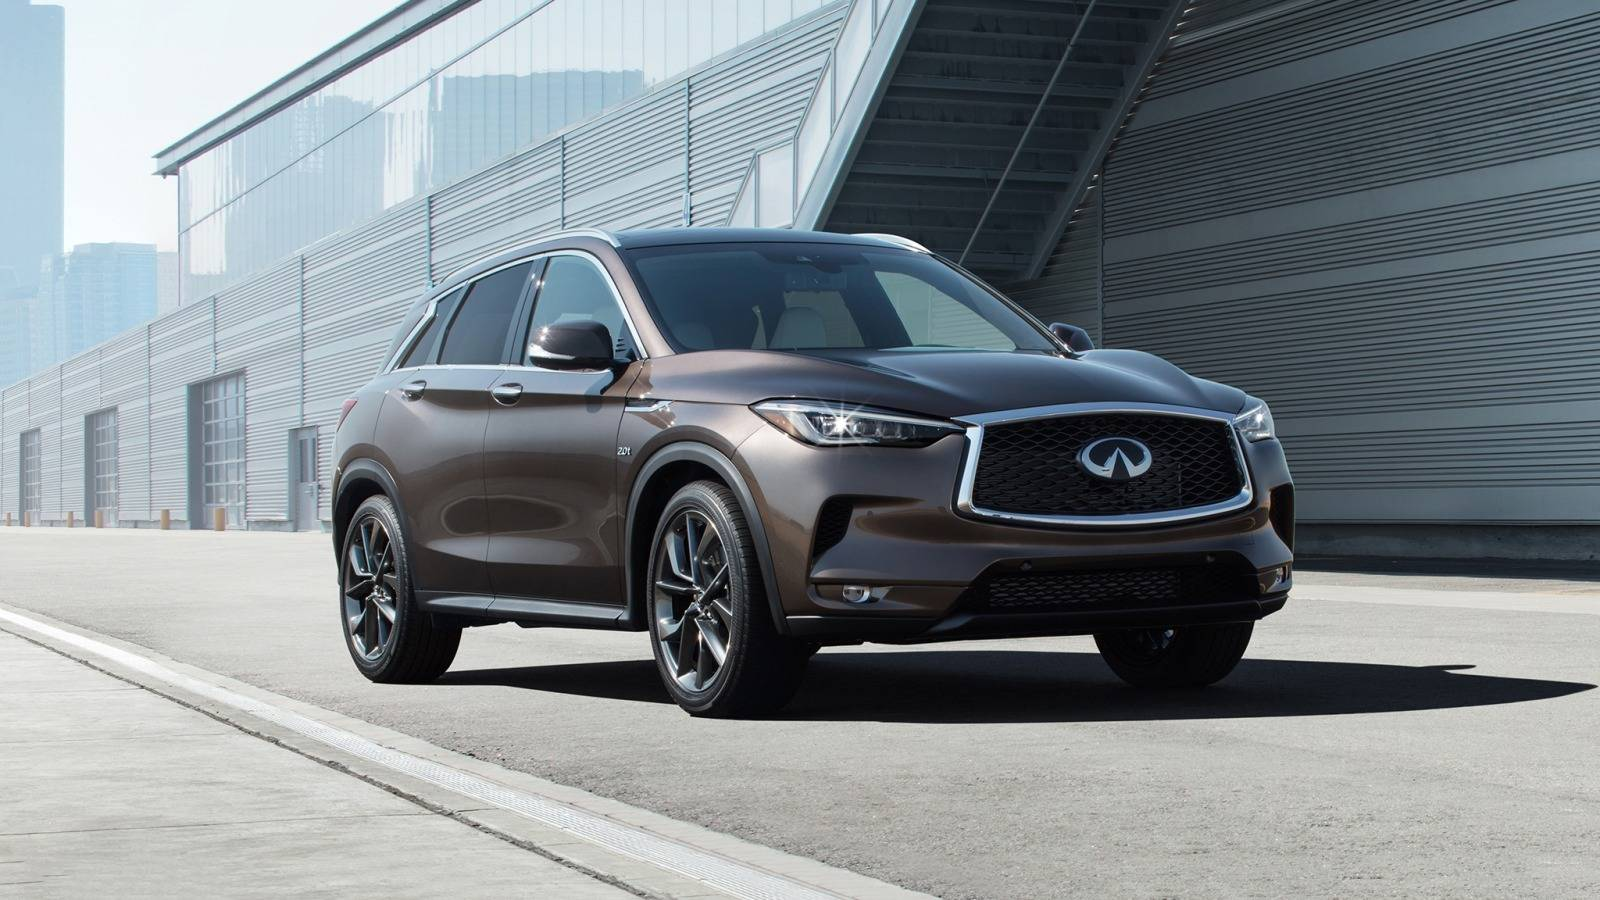 34 All New The Infiniti Qx50 2019 Trunk Specs And Review Performance And New Engine